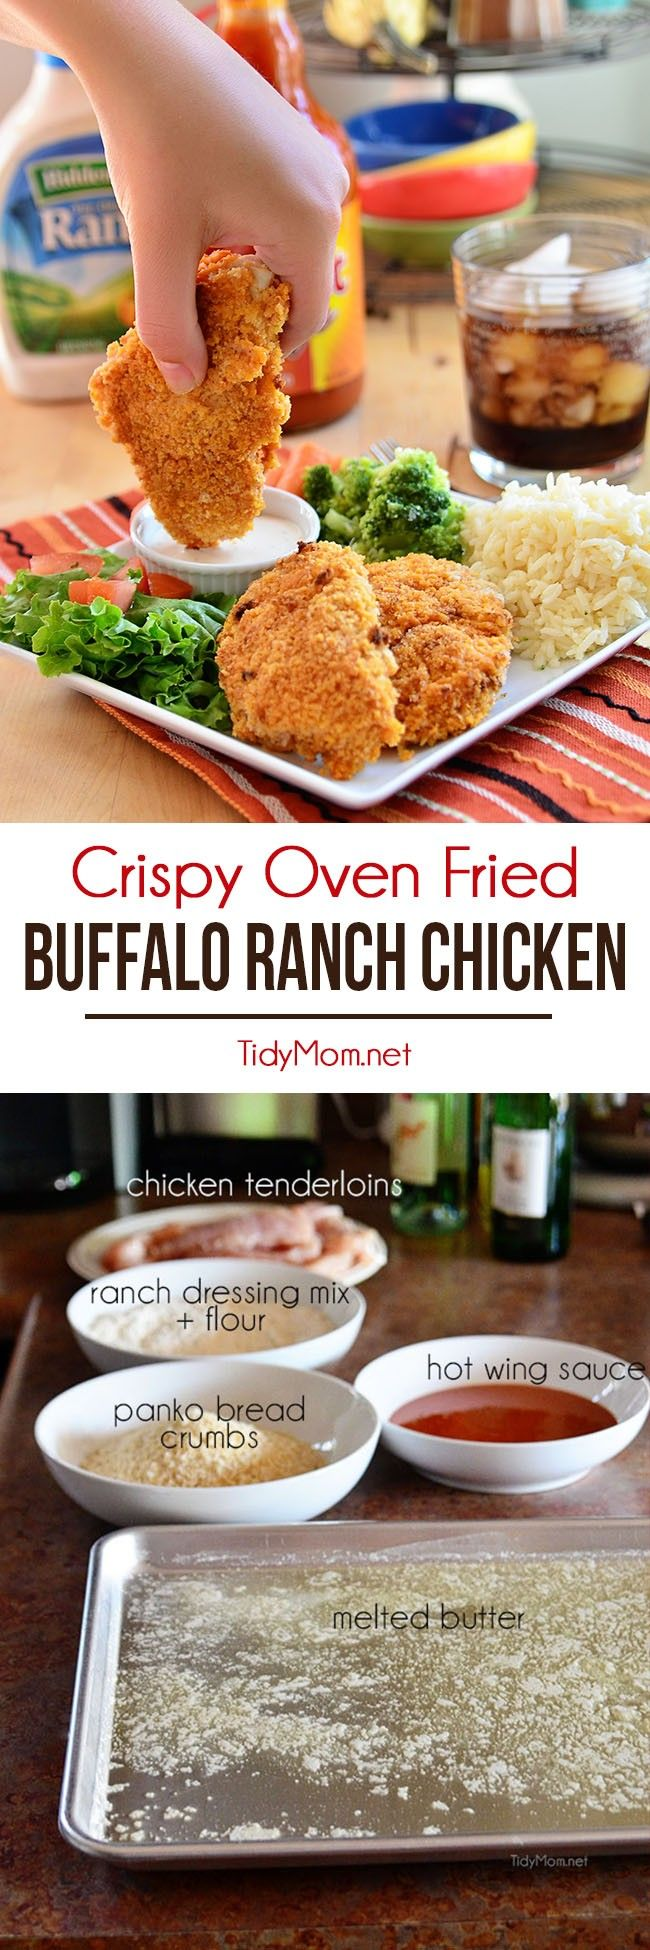 These crispy oven fried Buffalo Ranch Chicken strips are crisp-crusted moist and tender fiery buffalo sauce slathered where's the ranch dip chicken fingers. Get the recipe at TidyMom.net